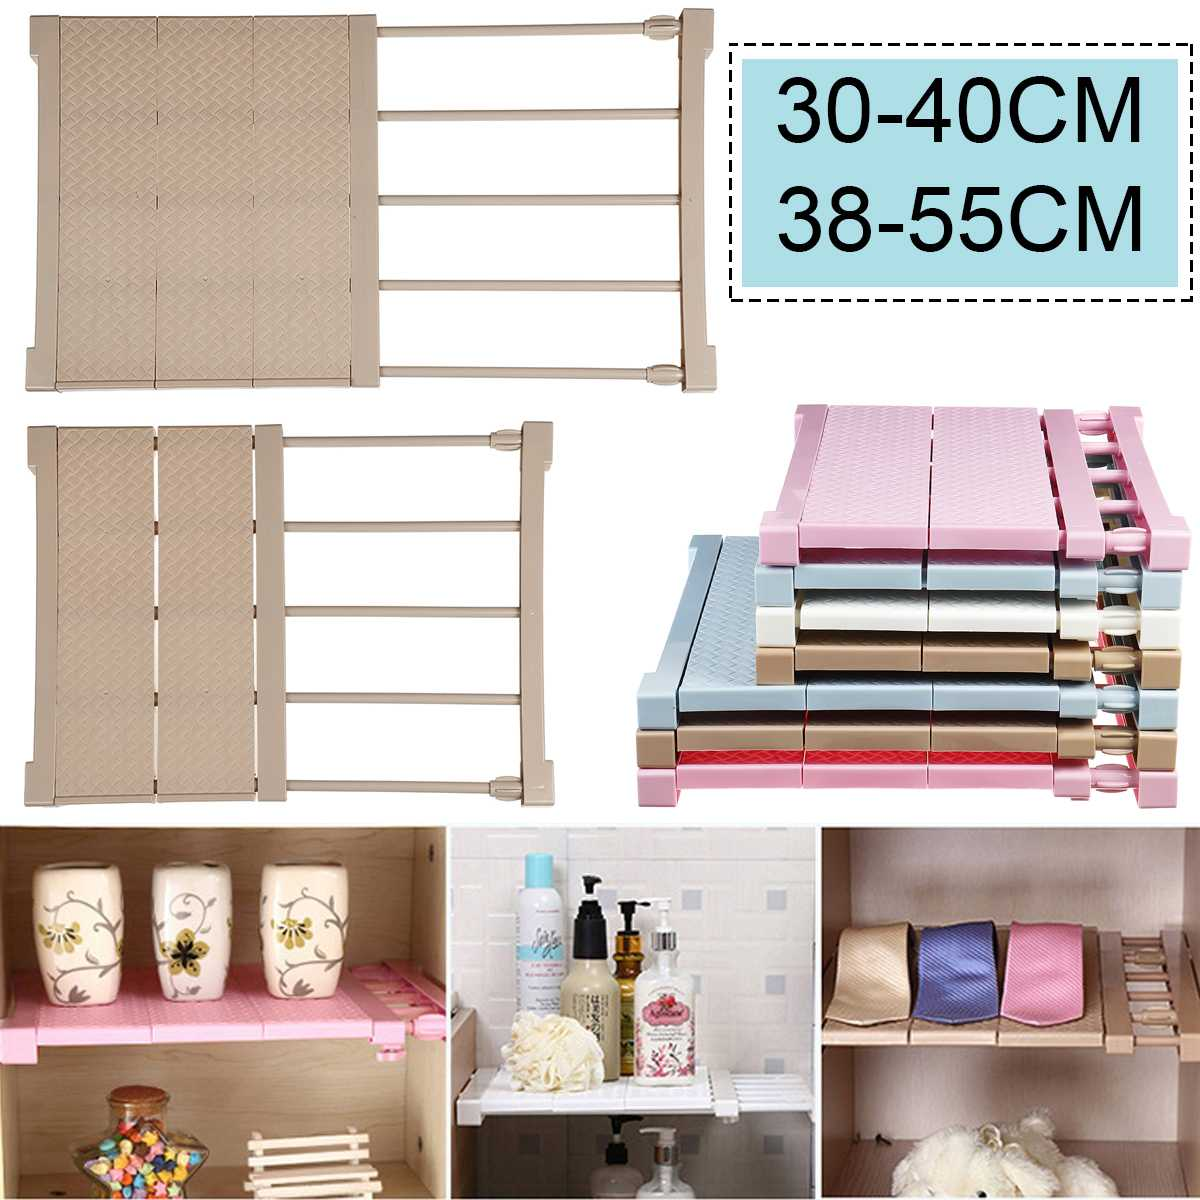 35CM Width Adjustable Closet Organizer Storage Shelf Wall Mounted Kitchen Rack Space Saving Wardrobe Shelves Cabinet Holders